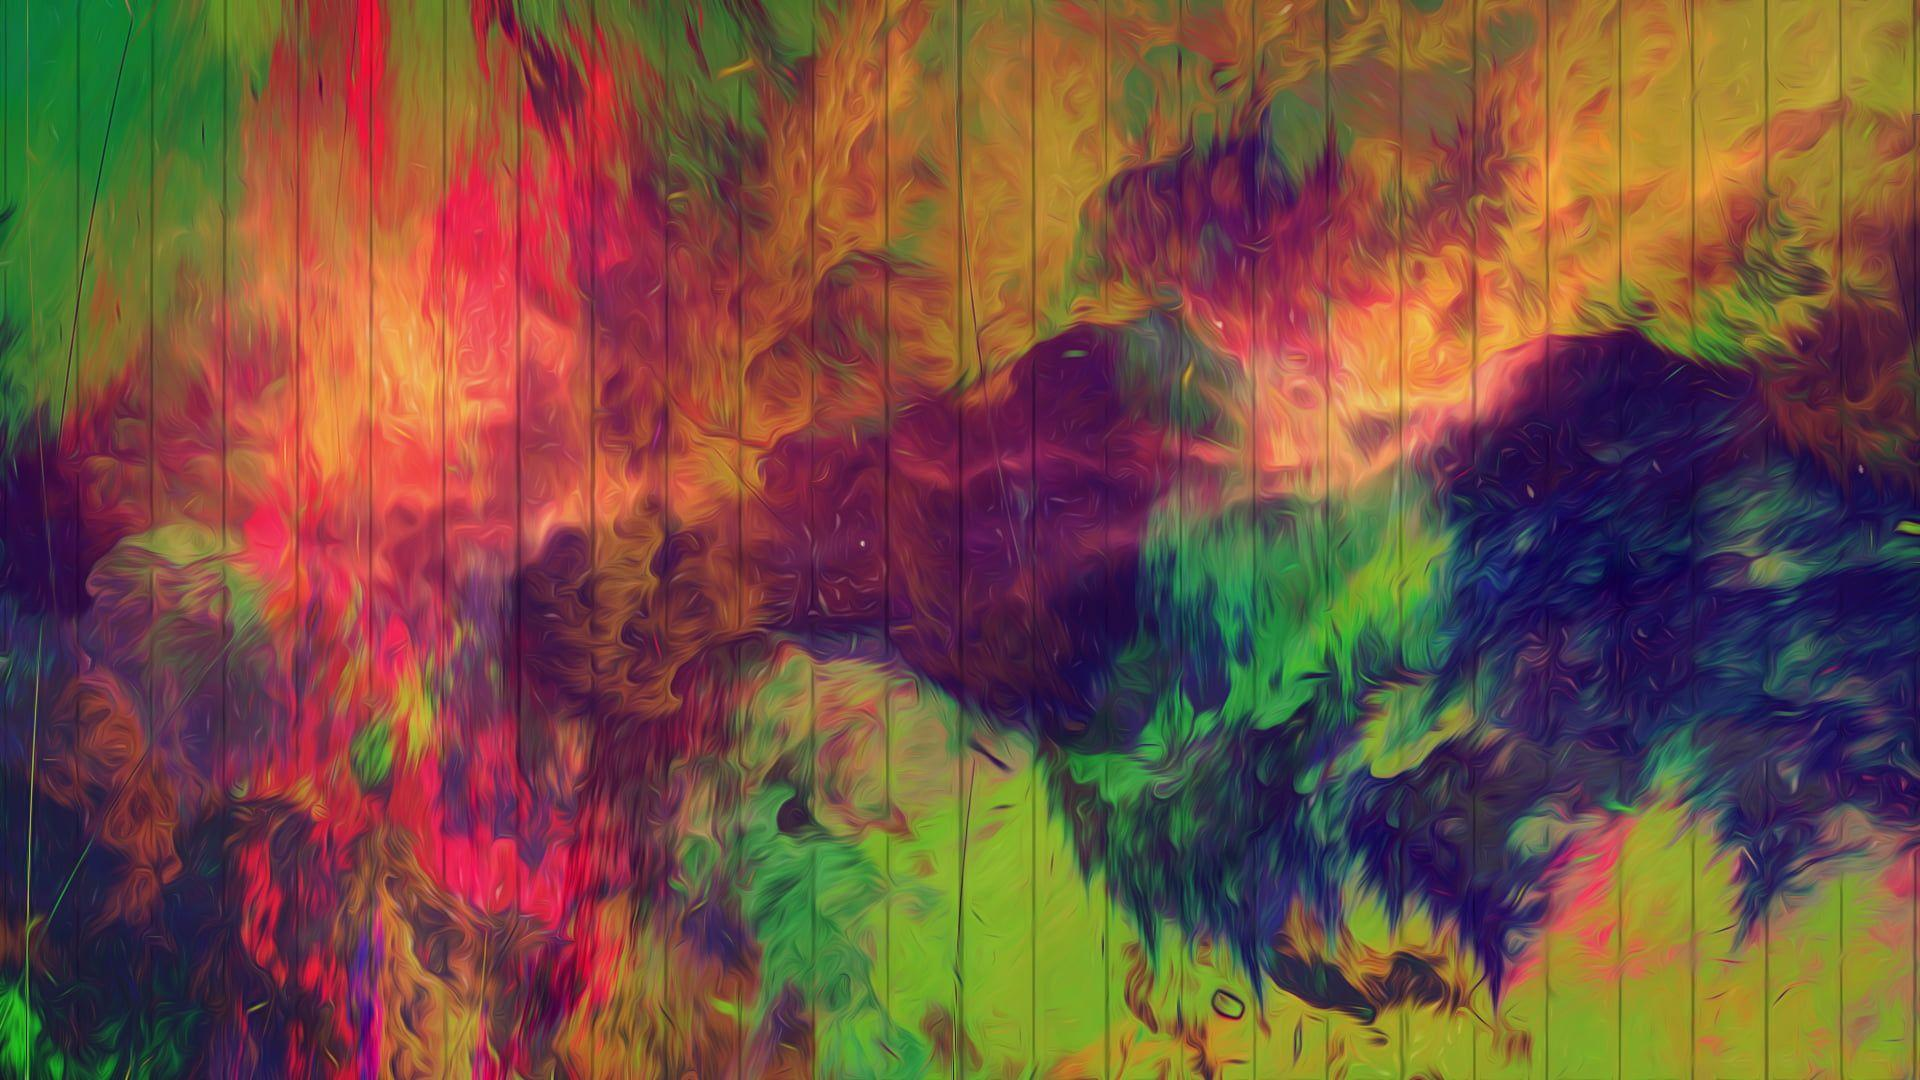 Hd Abstract Paintings Wallpapers Wallpaper Cave